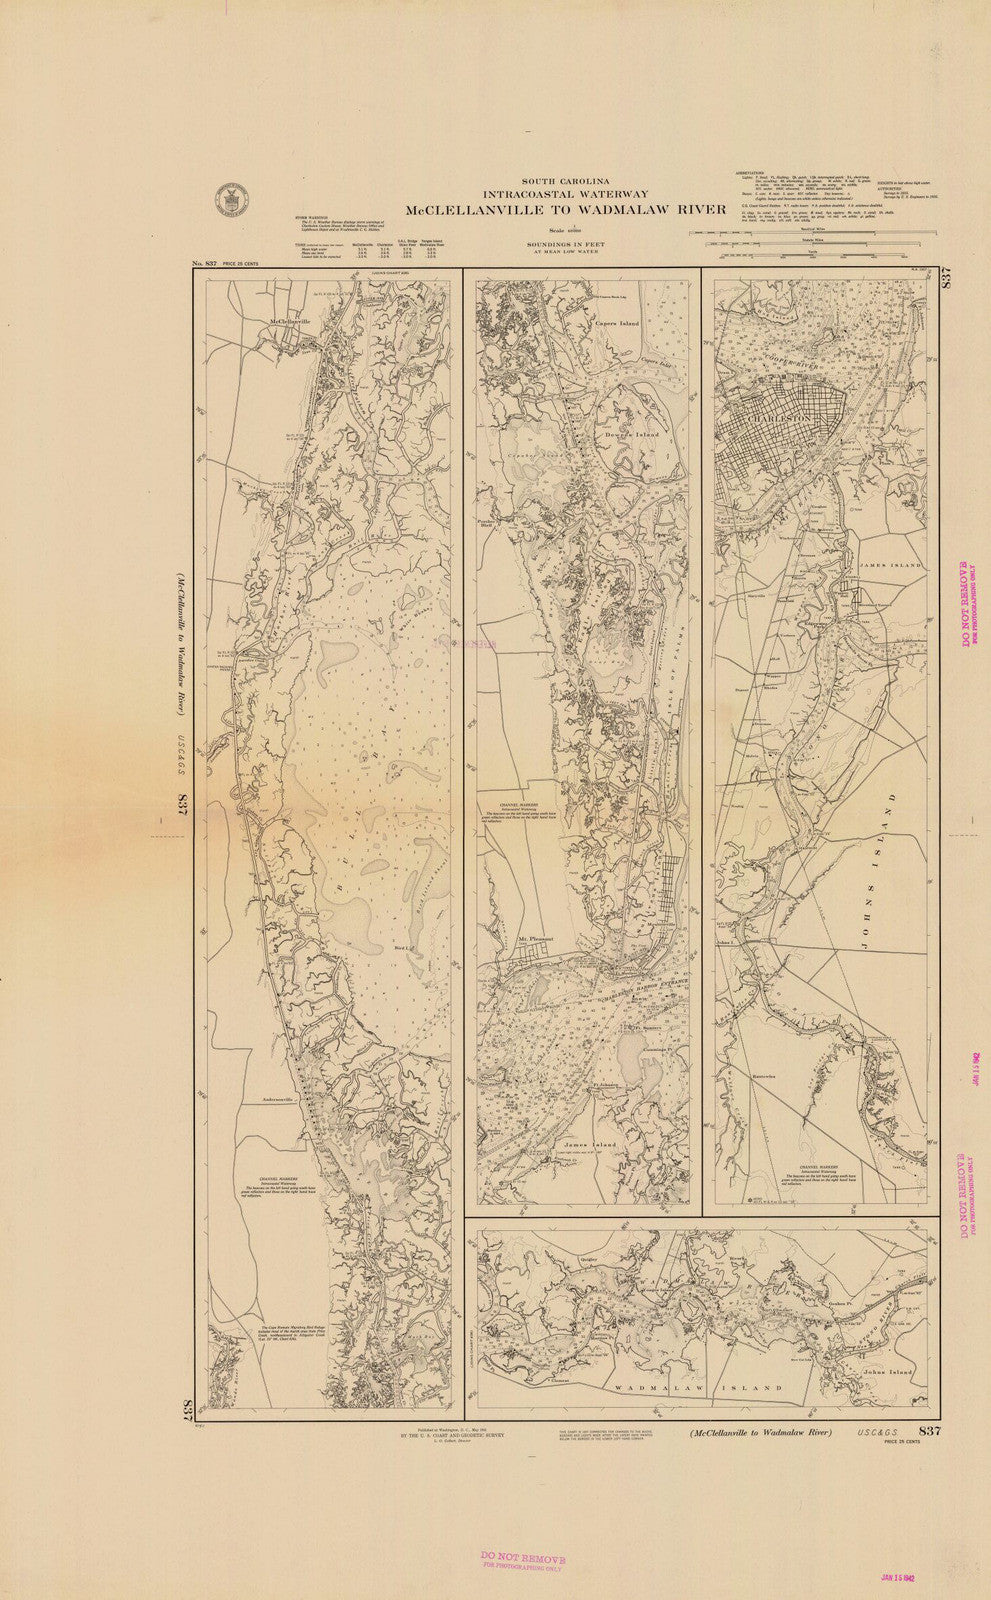 Mc Clellanville To Wadmalaw River Print on mayo clinic rochester map, csu east bay map, duke map, los angeles cities map, galveston texas city map, michigan state university campus map, unc map, uc berkeley map, jcu map, piedmont tech map, university of michigan map, university of oregon campus map, stanford university map, west texas state map, hcc ybor campus map, la southwest college map, seton hall map, harvard map, university of ca map, ucla map,